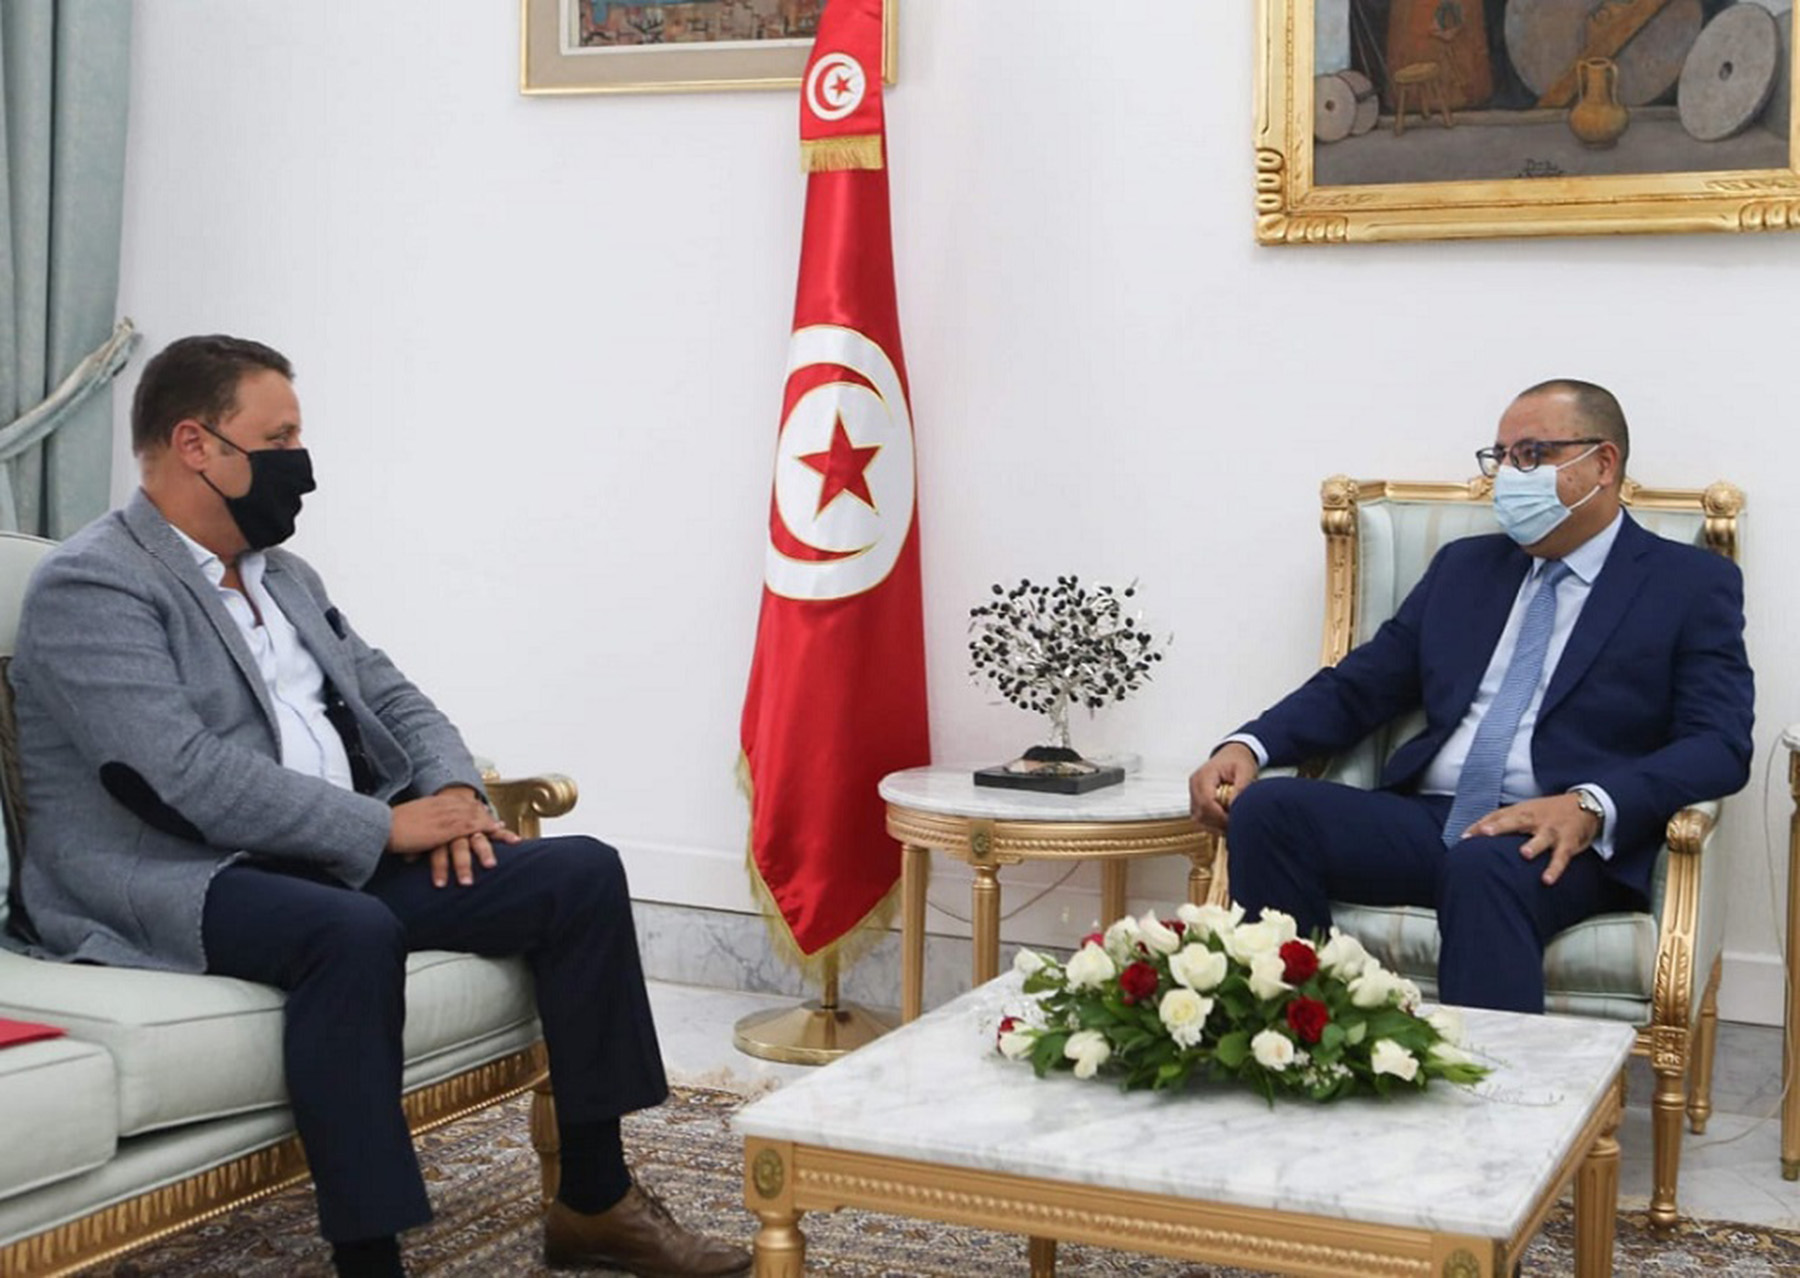 Tunisian Prime Minister Hichem Mechichi meets with People's Movement MP Haykal Mekki, October 14, in Tunis. (Prime Minister's office)